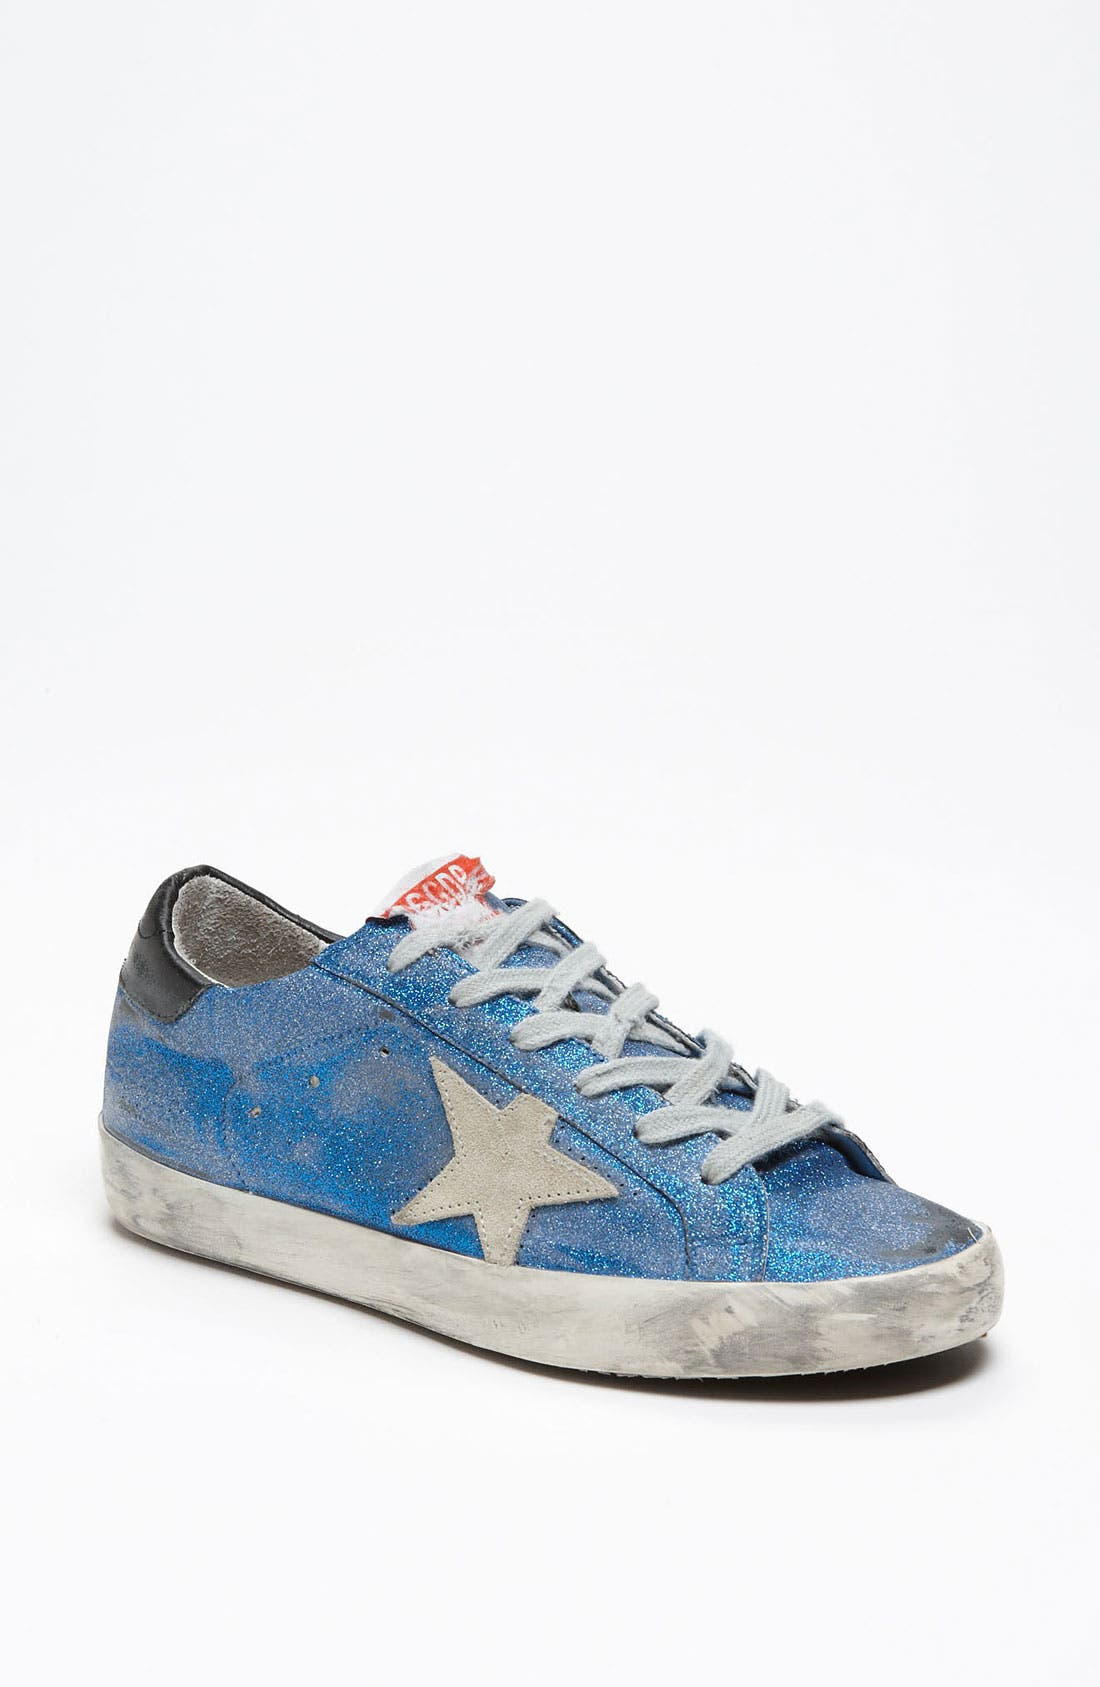 Main Image - Golden Goose 'Superstar' Sneaker